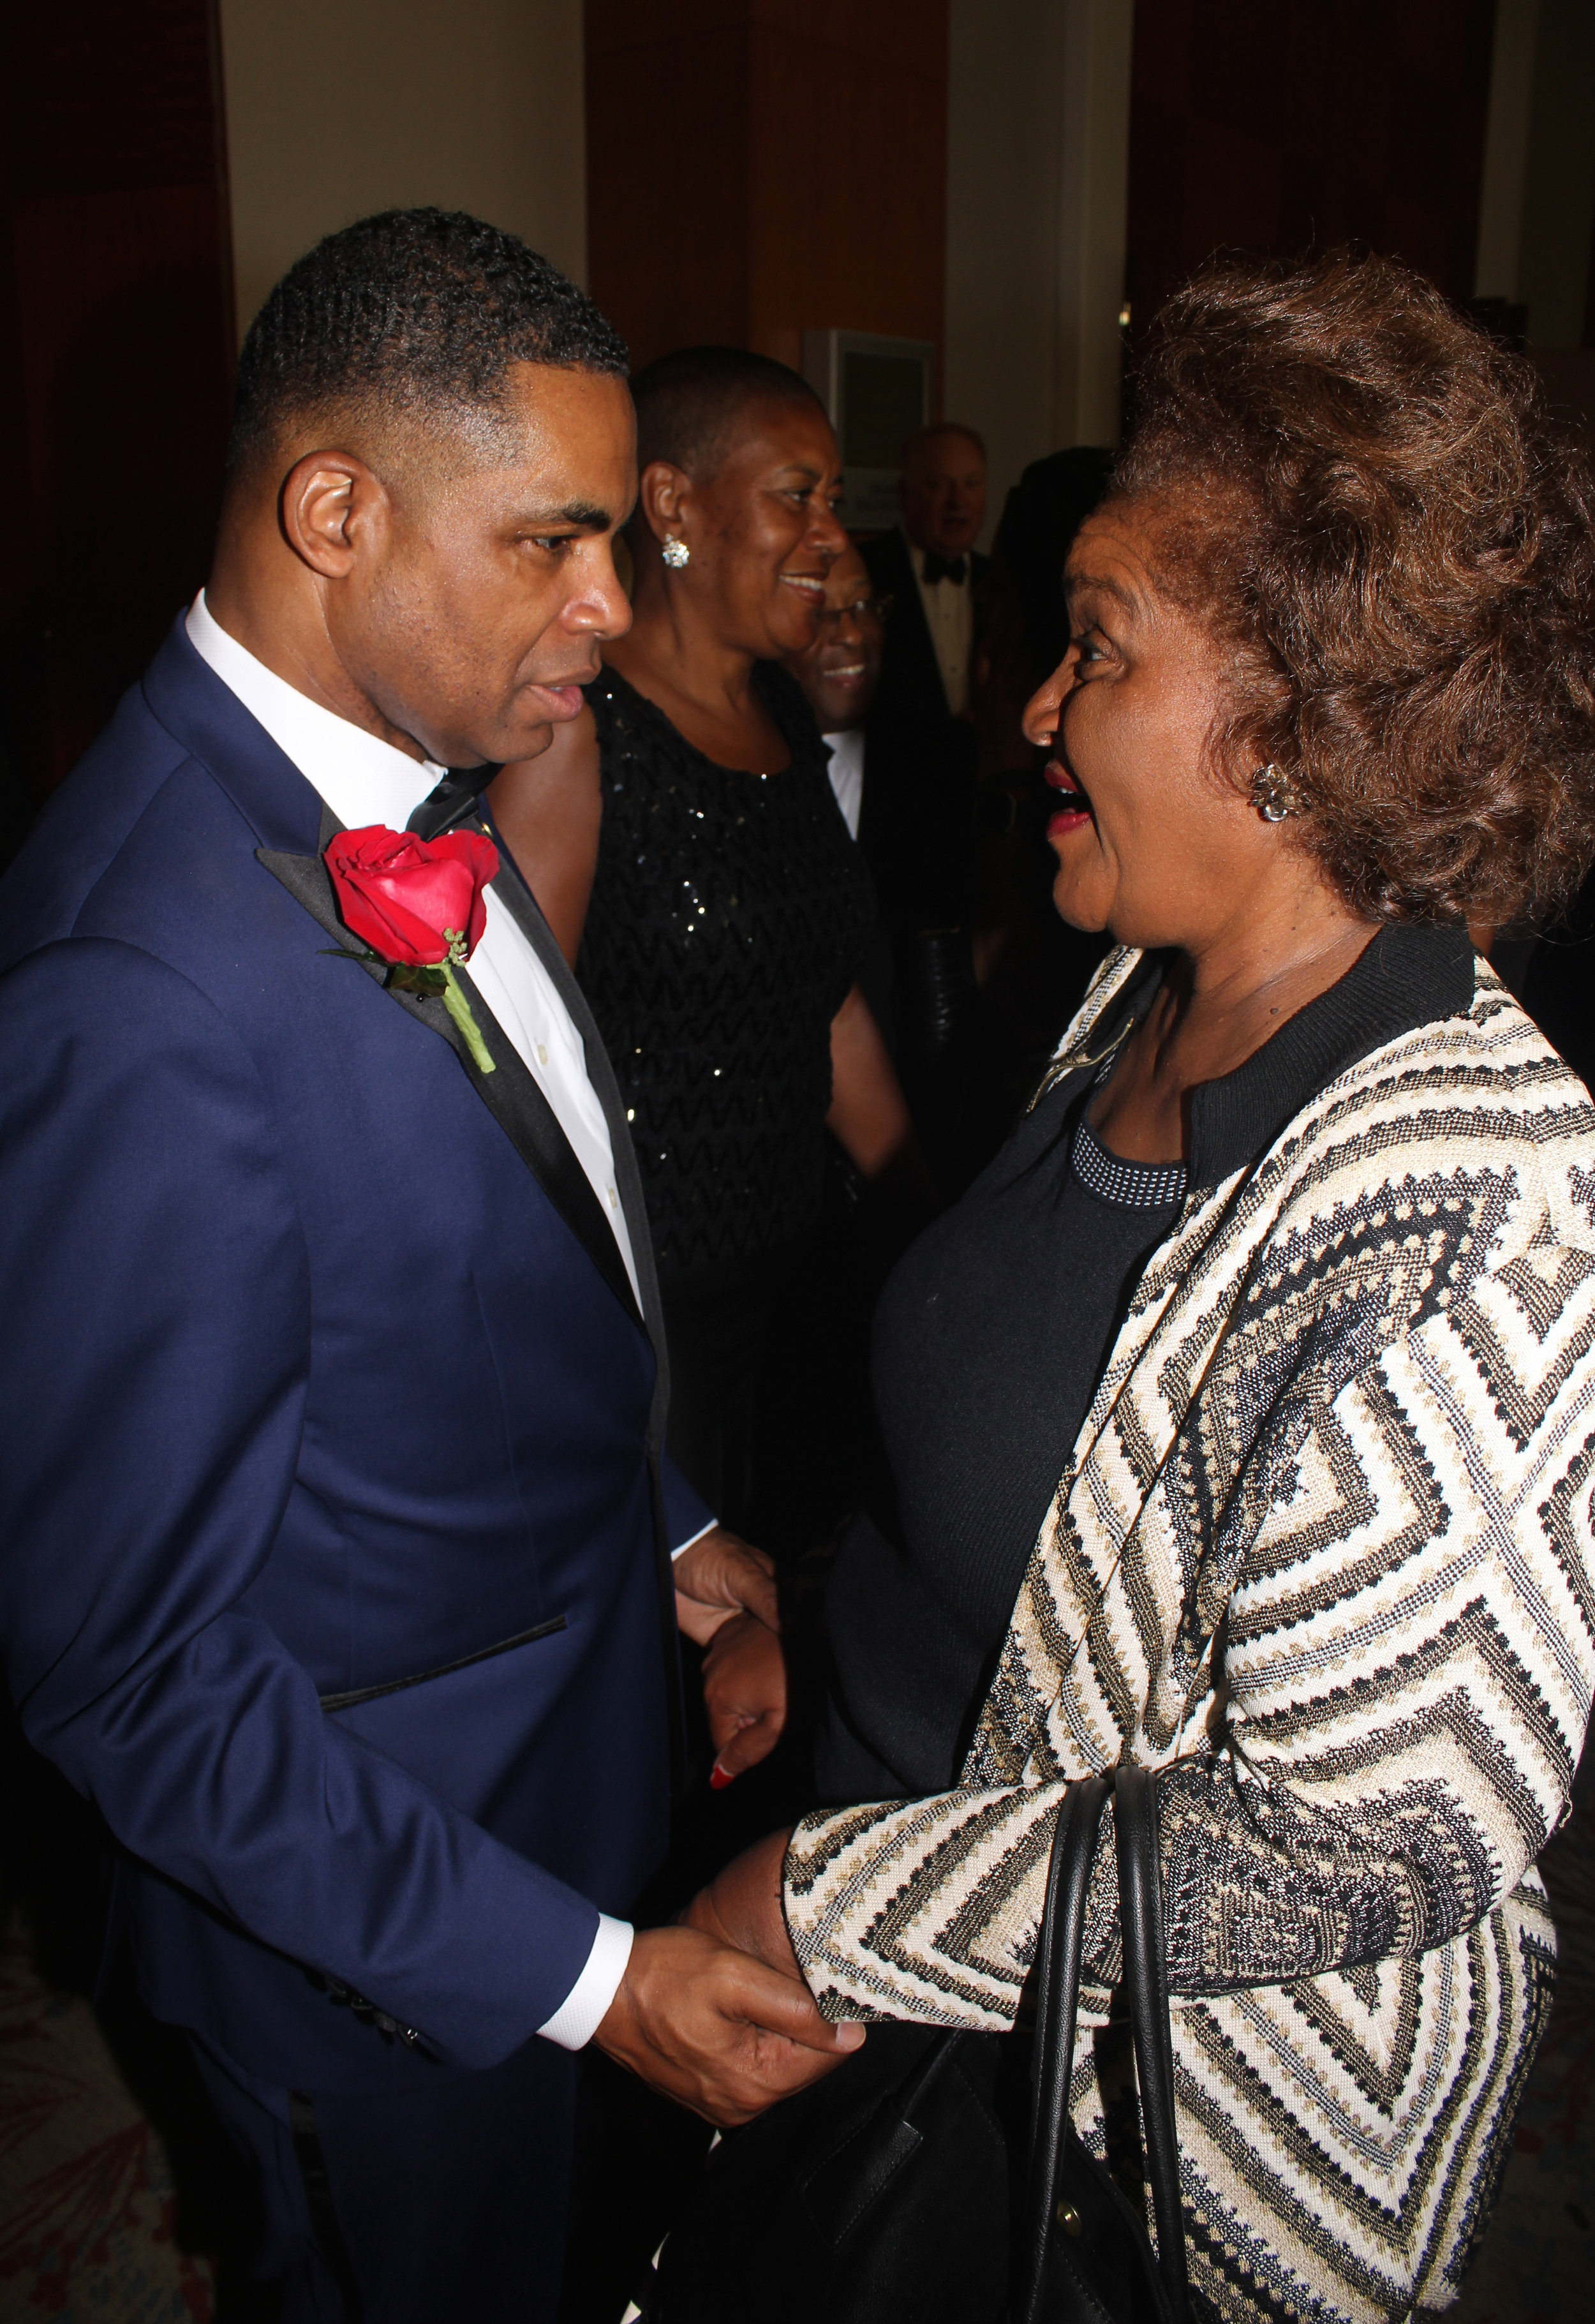 Kieth Cockrell with one of the most important women in his life, his beloved former teacher and mentor Juanita Cooke.